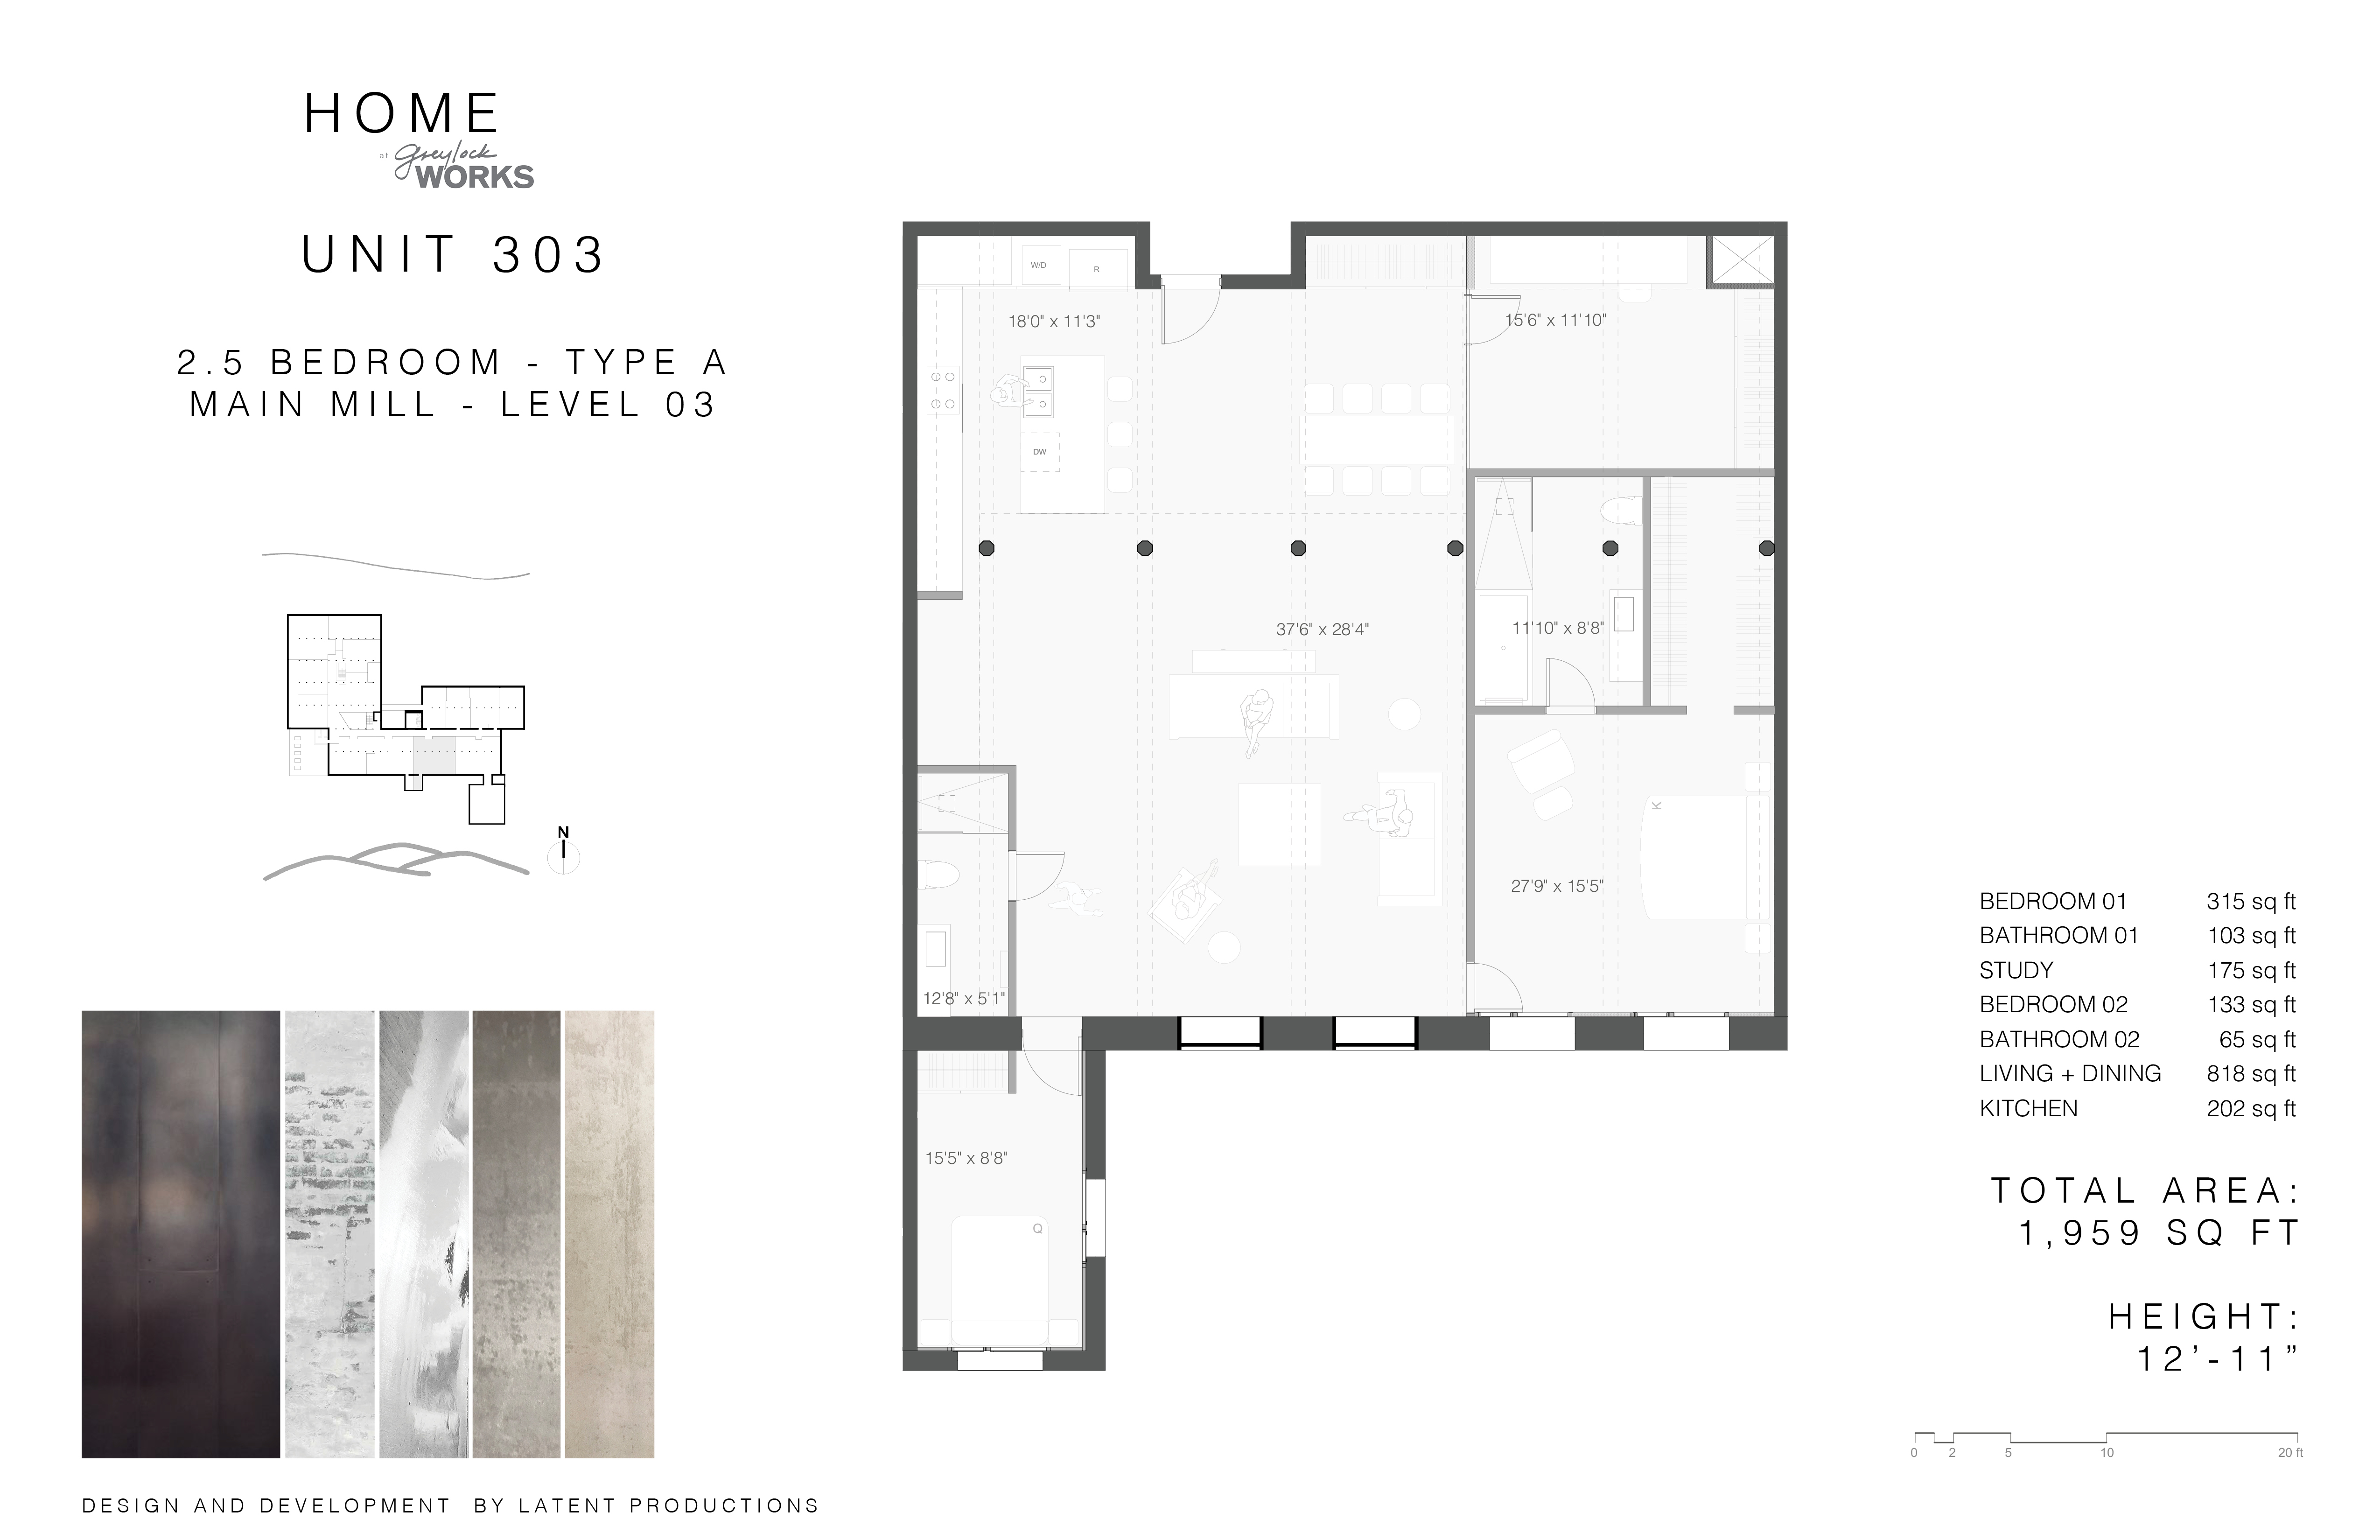 2.5BR-A